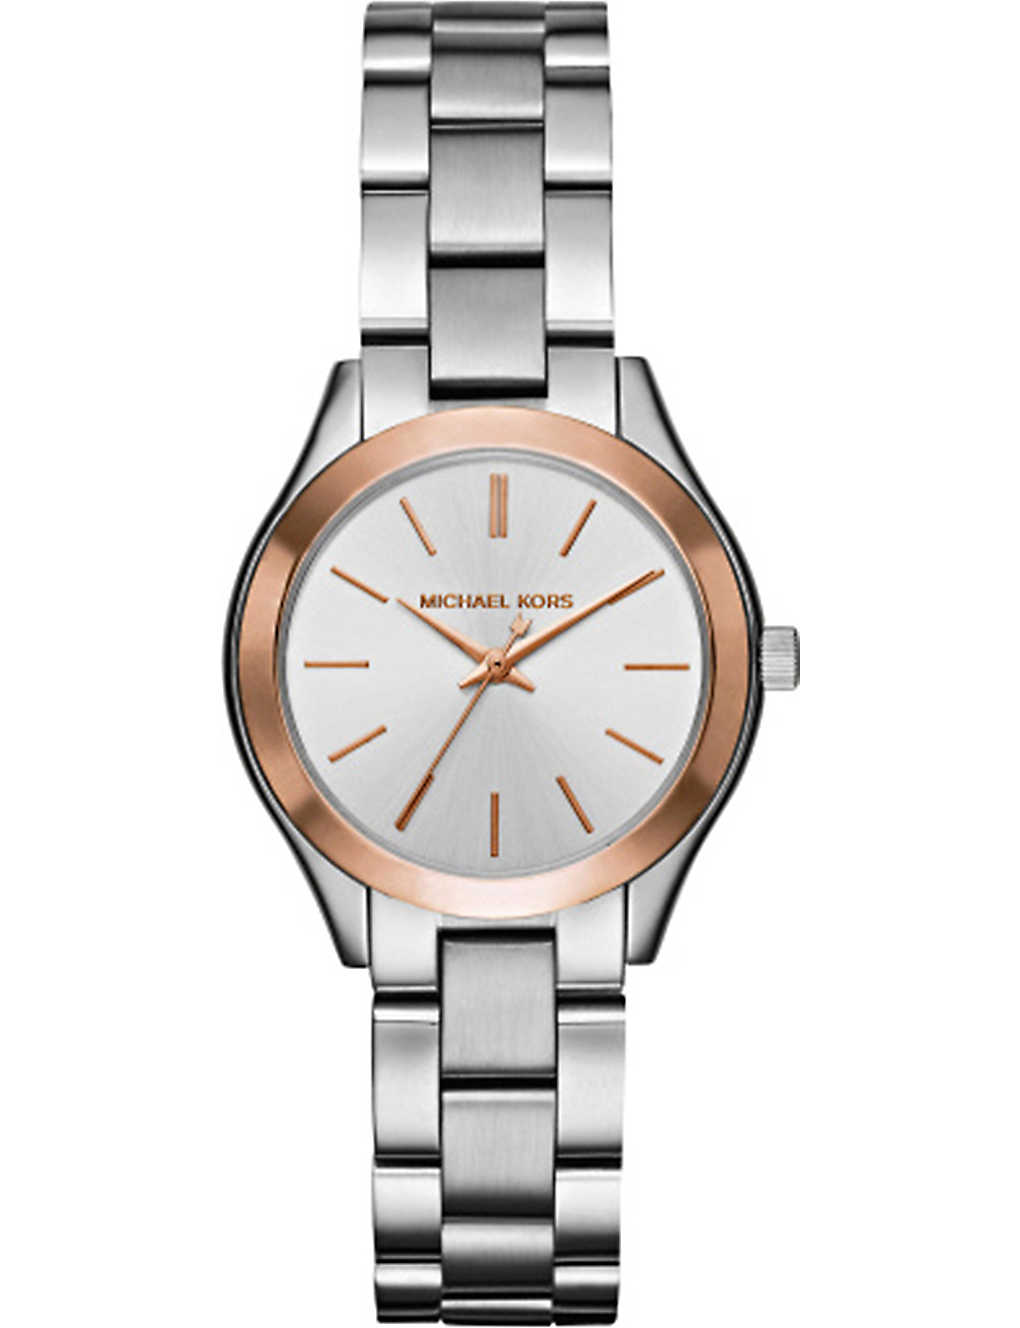 6da197c4b MICHAEL KORS - 3514 Mini Slim Runway stainless steel watch ...